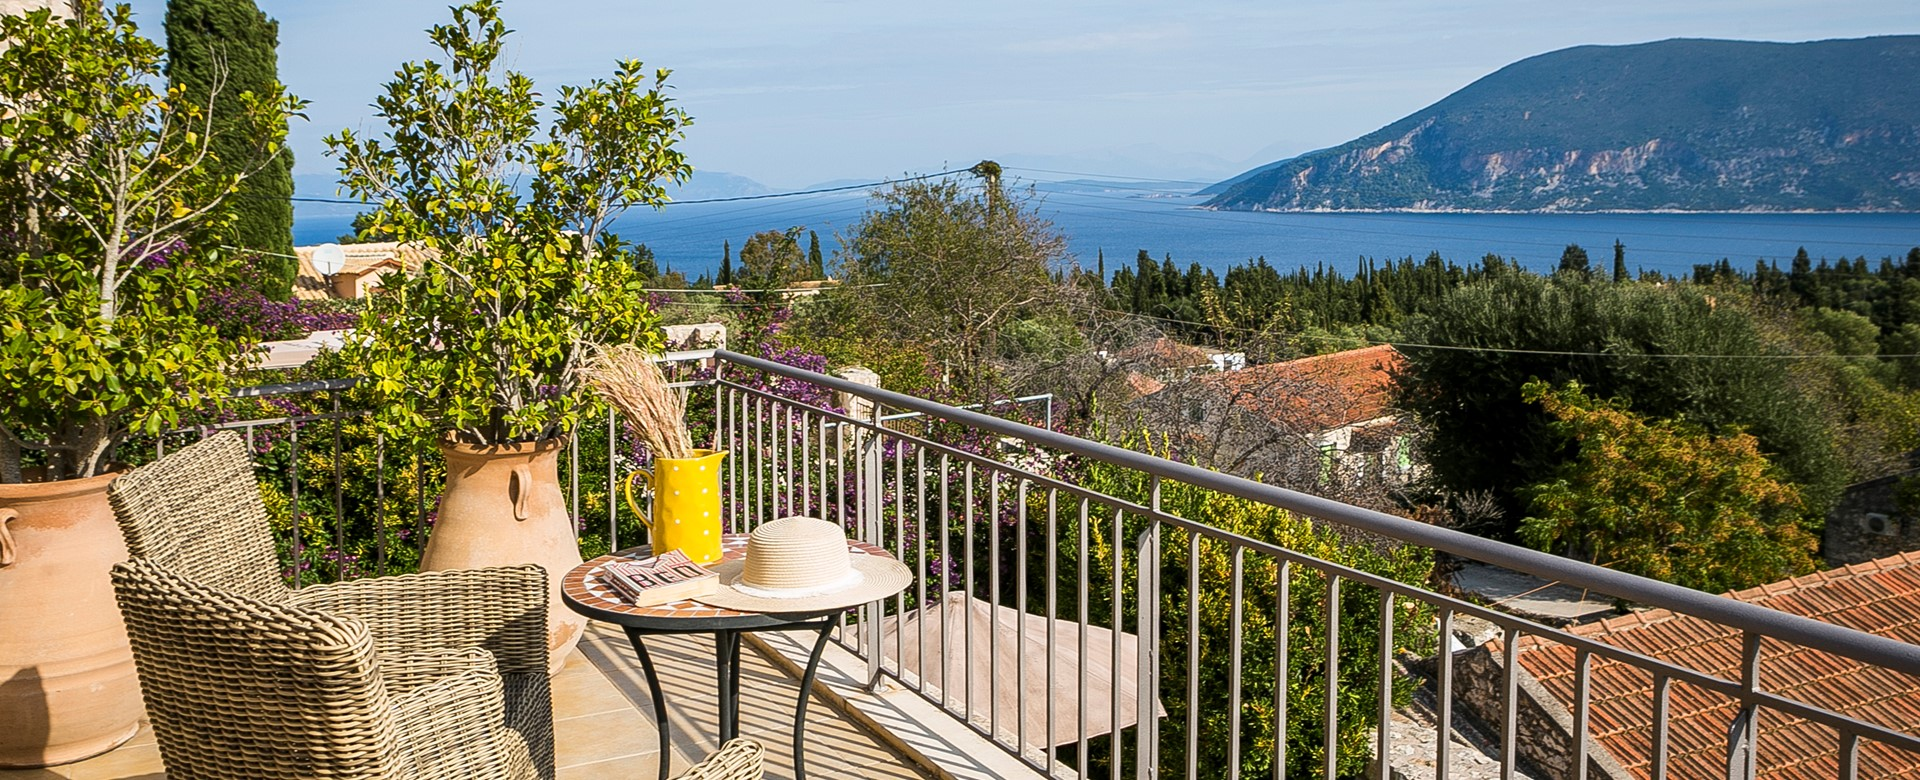 Enjoy a coffee or glass of wine as you unwind on holiday enjoying the views from the balcony of Villa Pelagia, Fiscardo, Kefalonia, Greek Islands